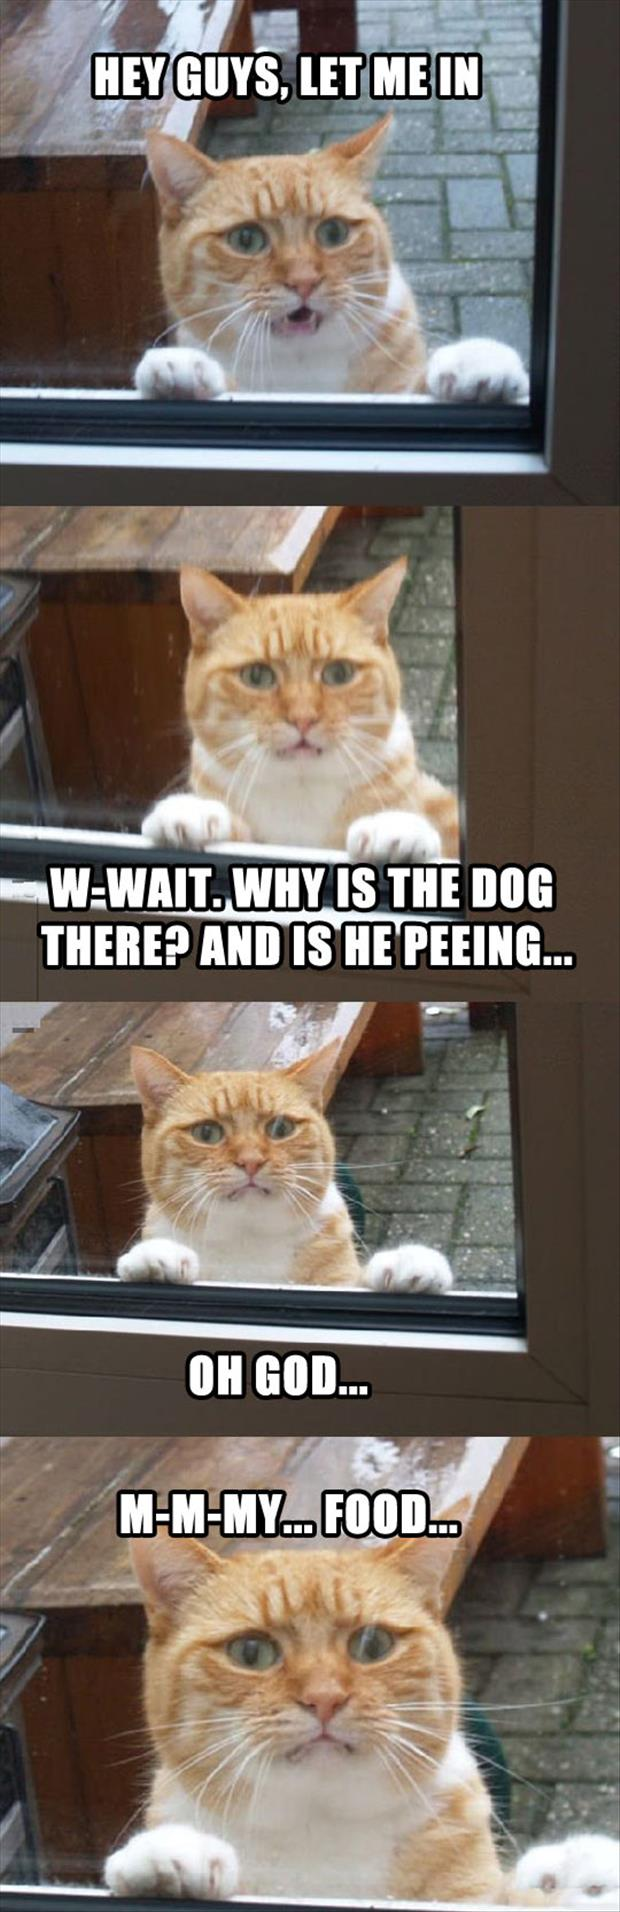 dog peeing on cat's food